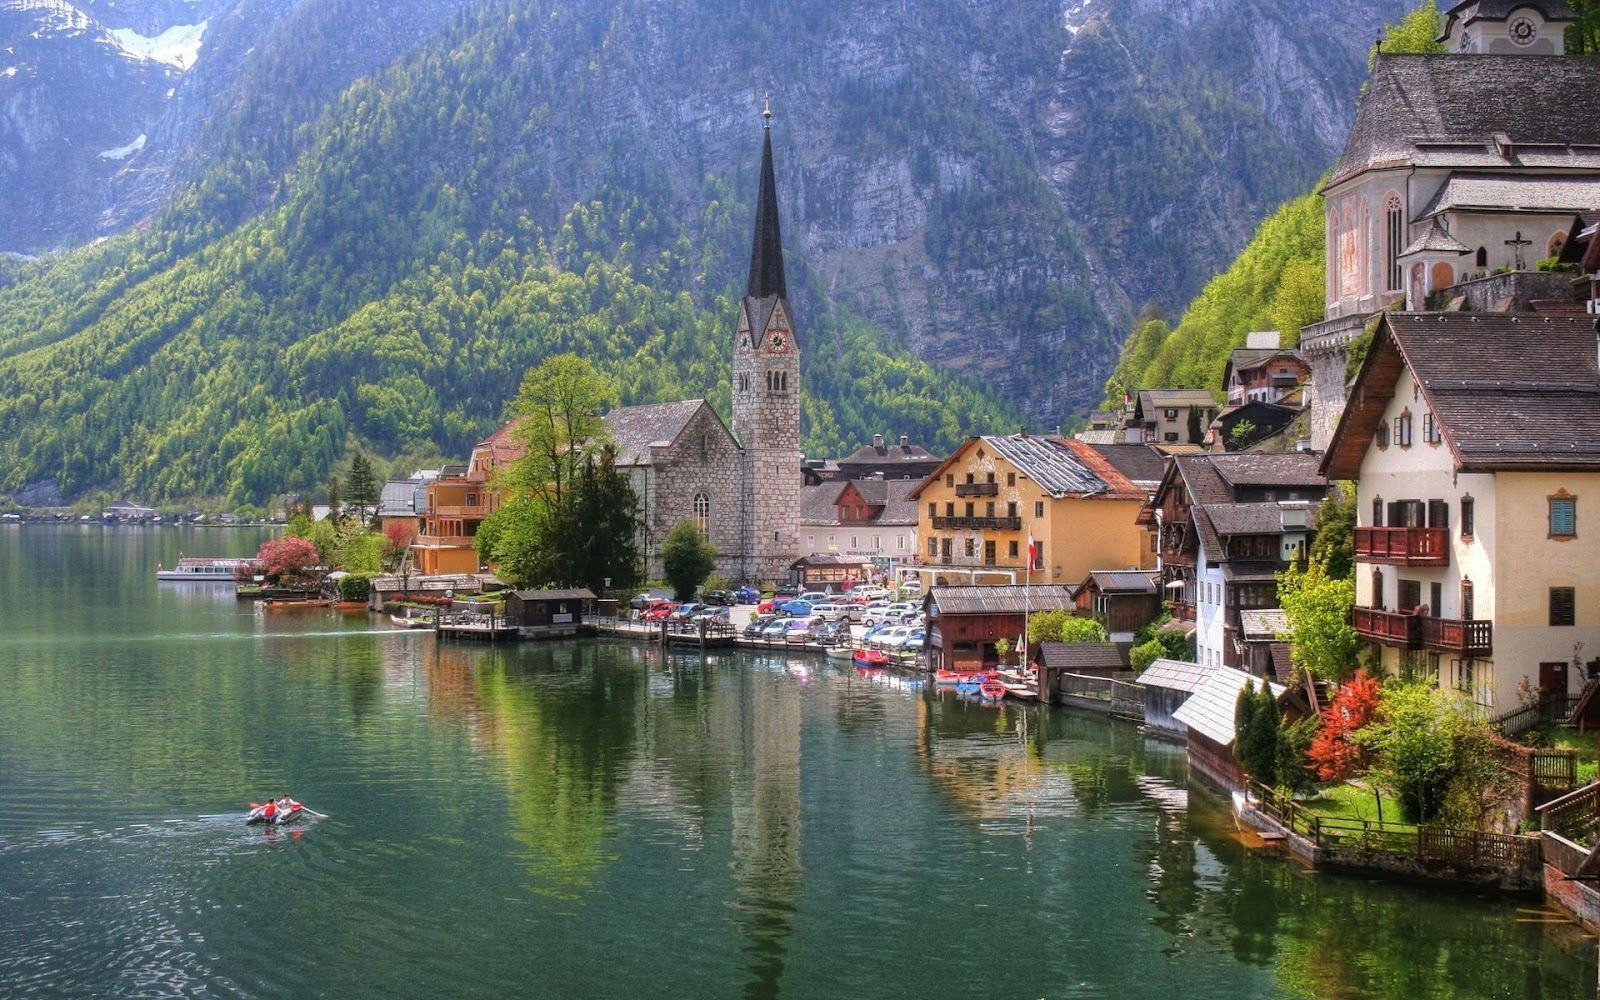 Fulpmes Austria  city photos gallery : Travel Trip Journey: Hallstatt, Austria